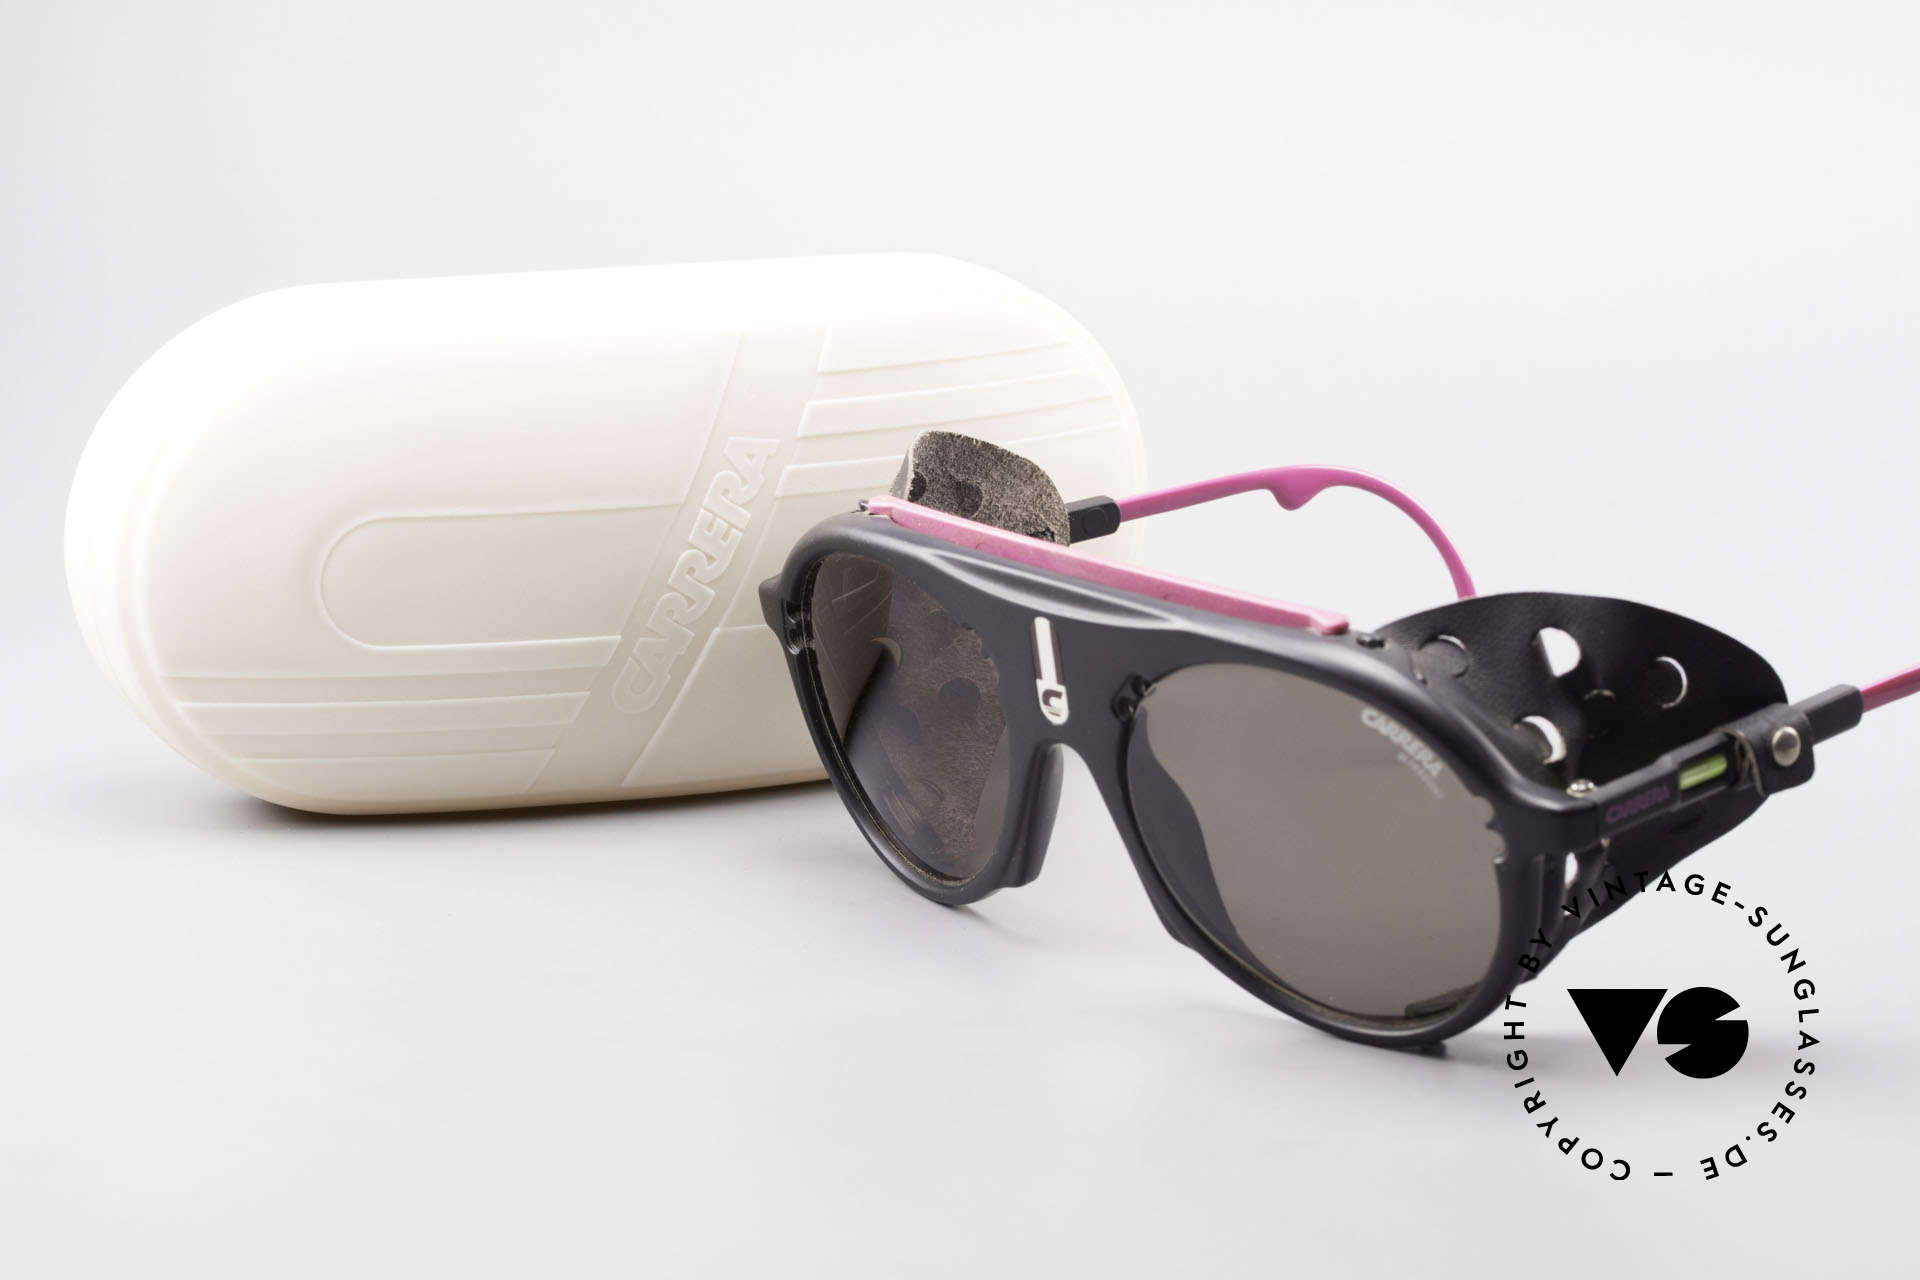 Carrera 5436 Water & Ice Glacier Shades, NO retro shades; a rare old 80's original (incl. case), Made for Men and Women